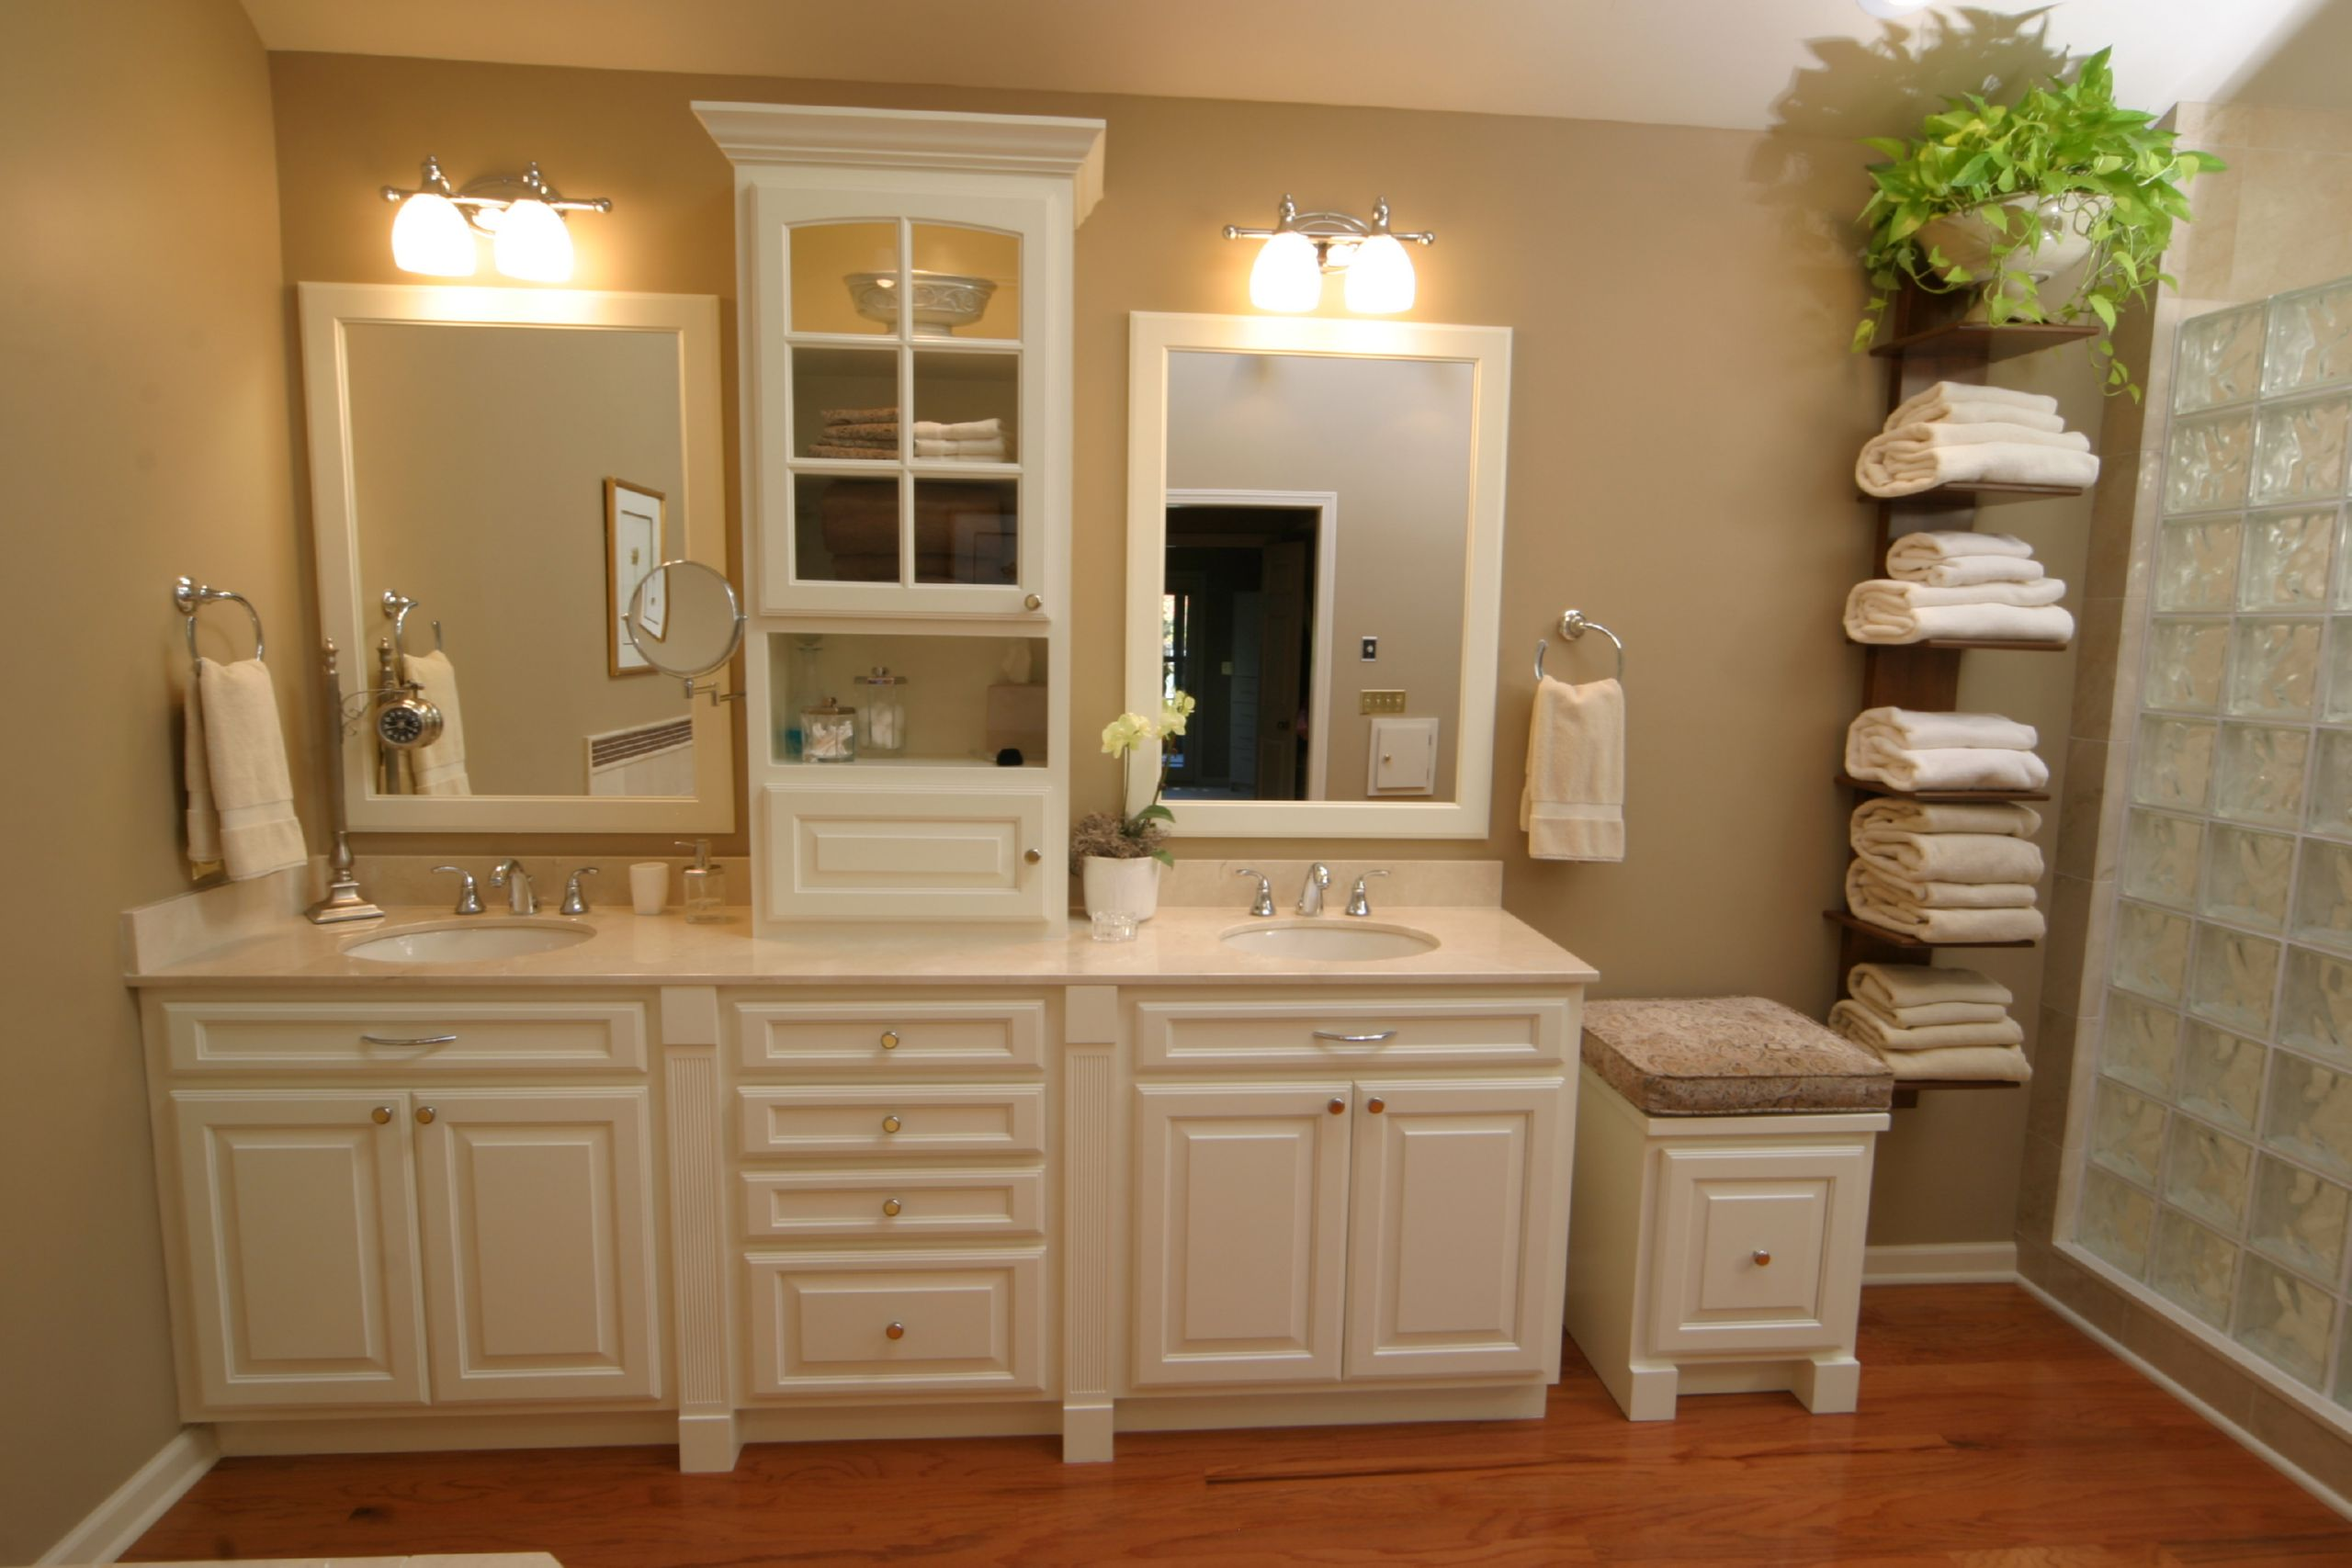 Bathroom remodeling bath remodel contractor for Remodeling ideas for bathrooms